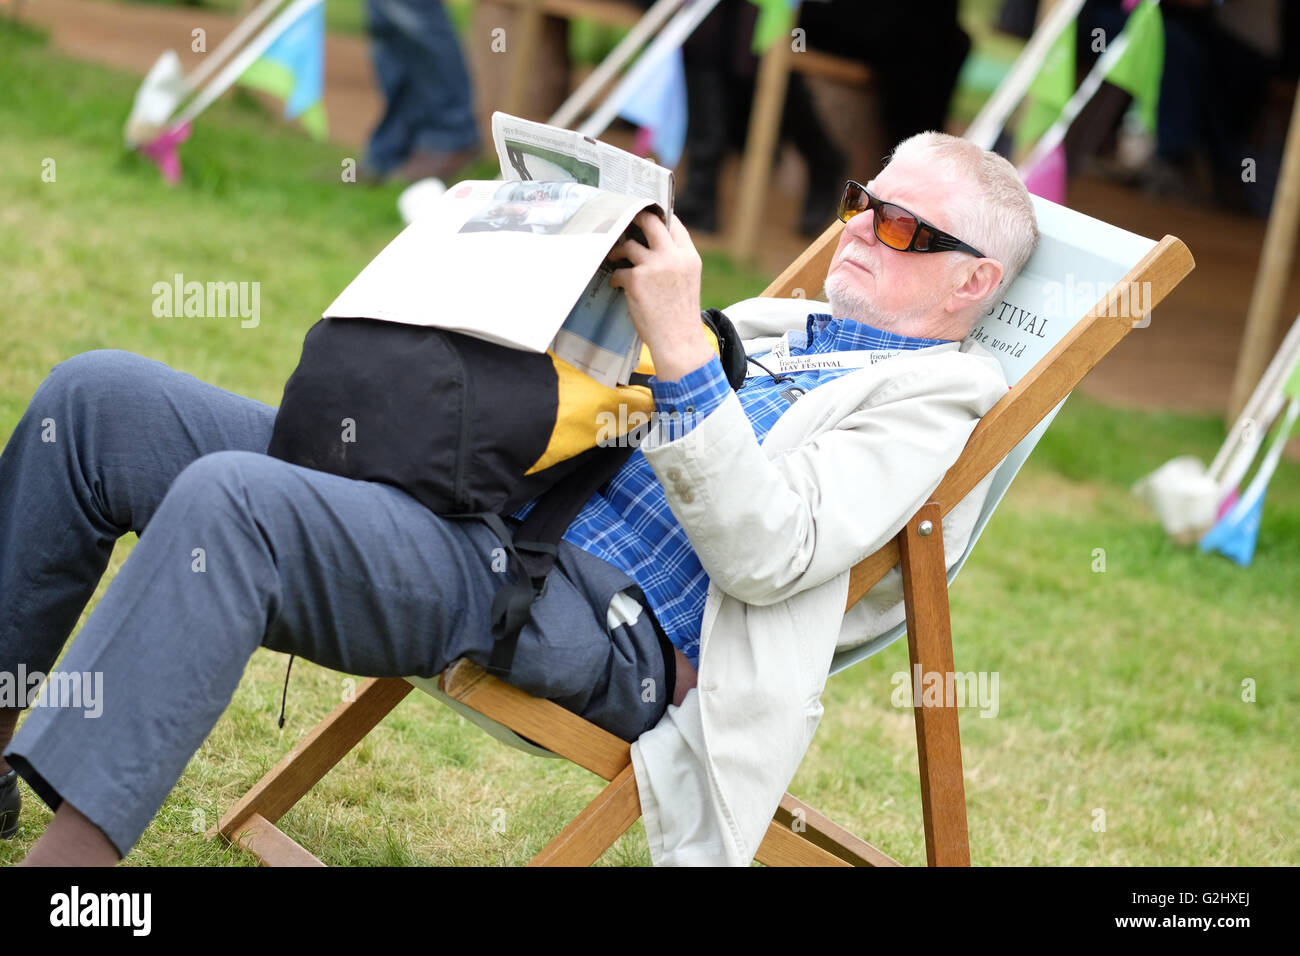 Hay Festival, Wales, UK - June 2016 -  A visitor finds time to sit and read his newspaper on the Hay Book Festival - Stock Image